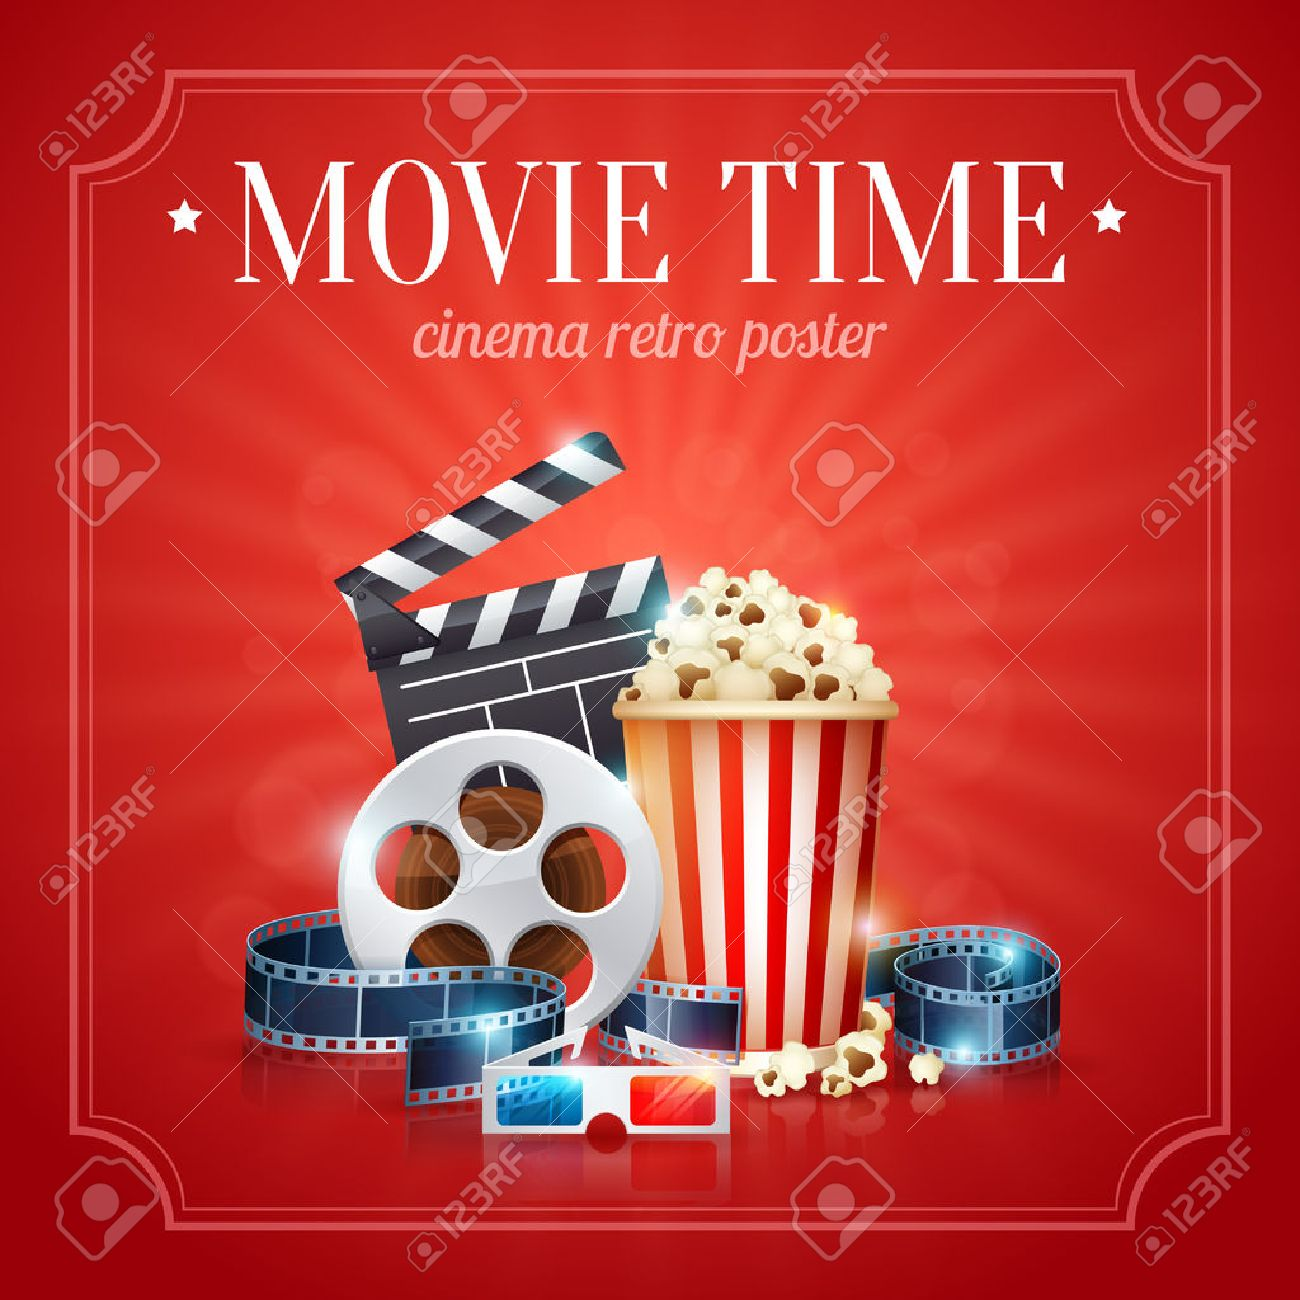 Realistic cinema movie poster template with film reel, clapper, popcorn, 3D glasses, with bokeh background - 42156368